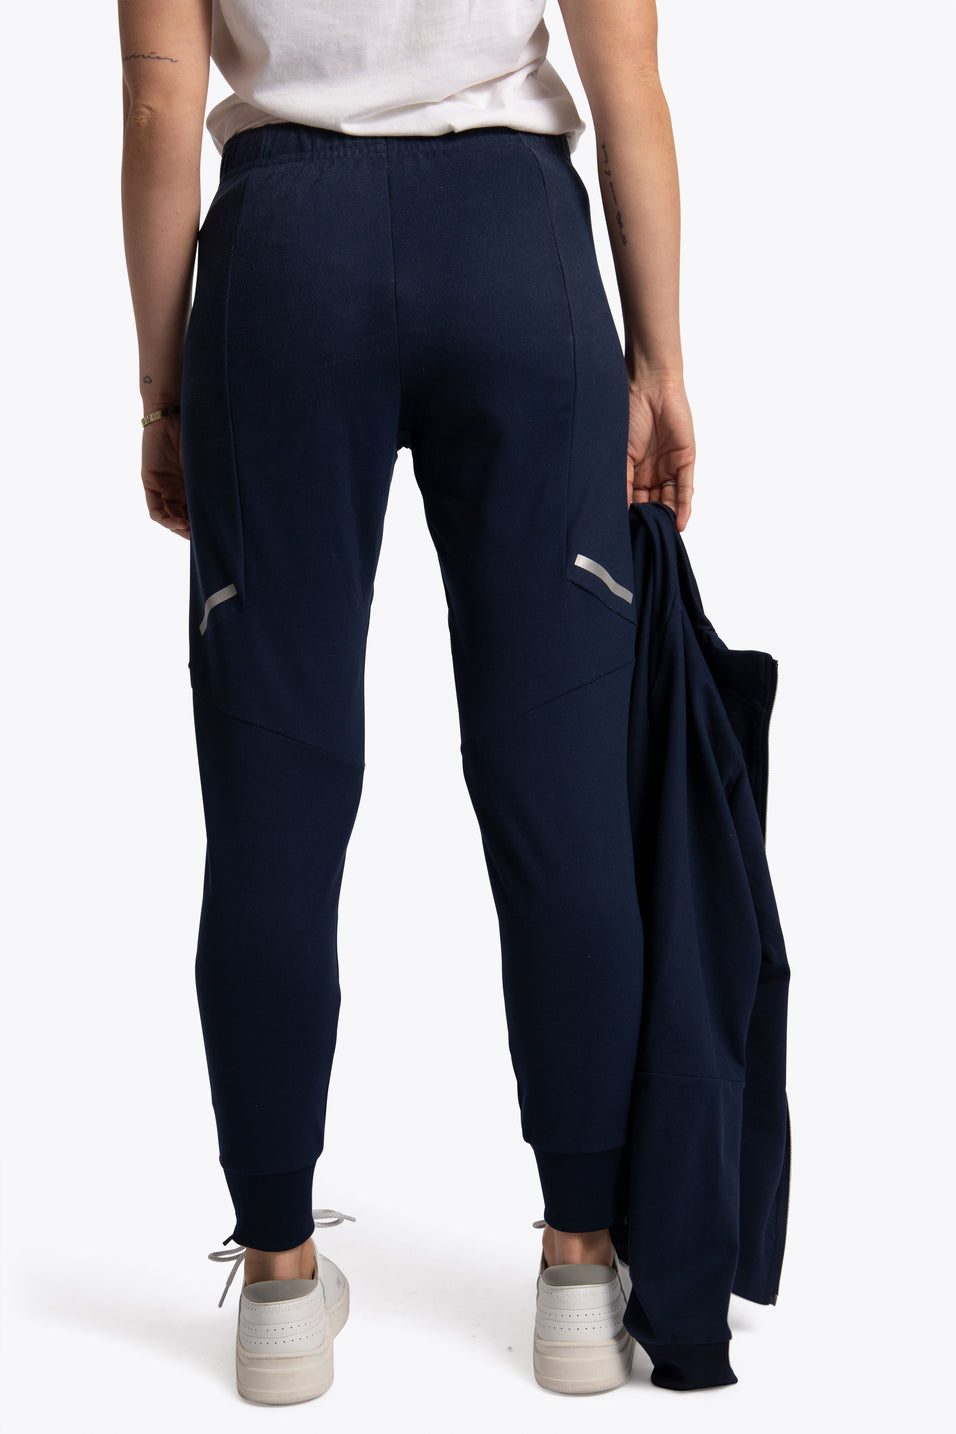 KHC Dragons Women Track Pants - Navy